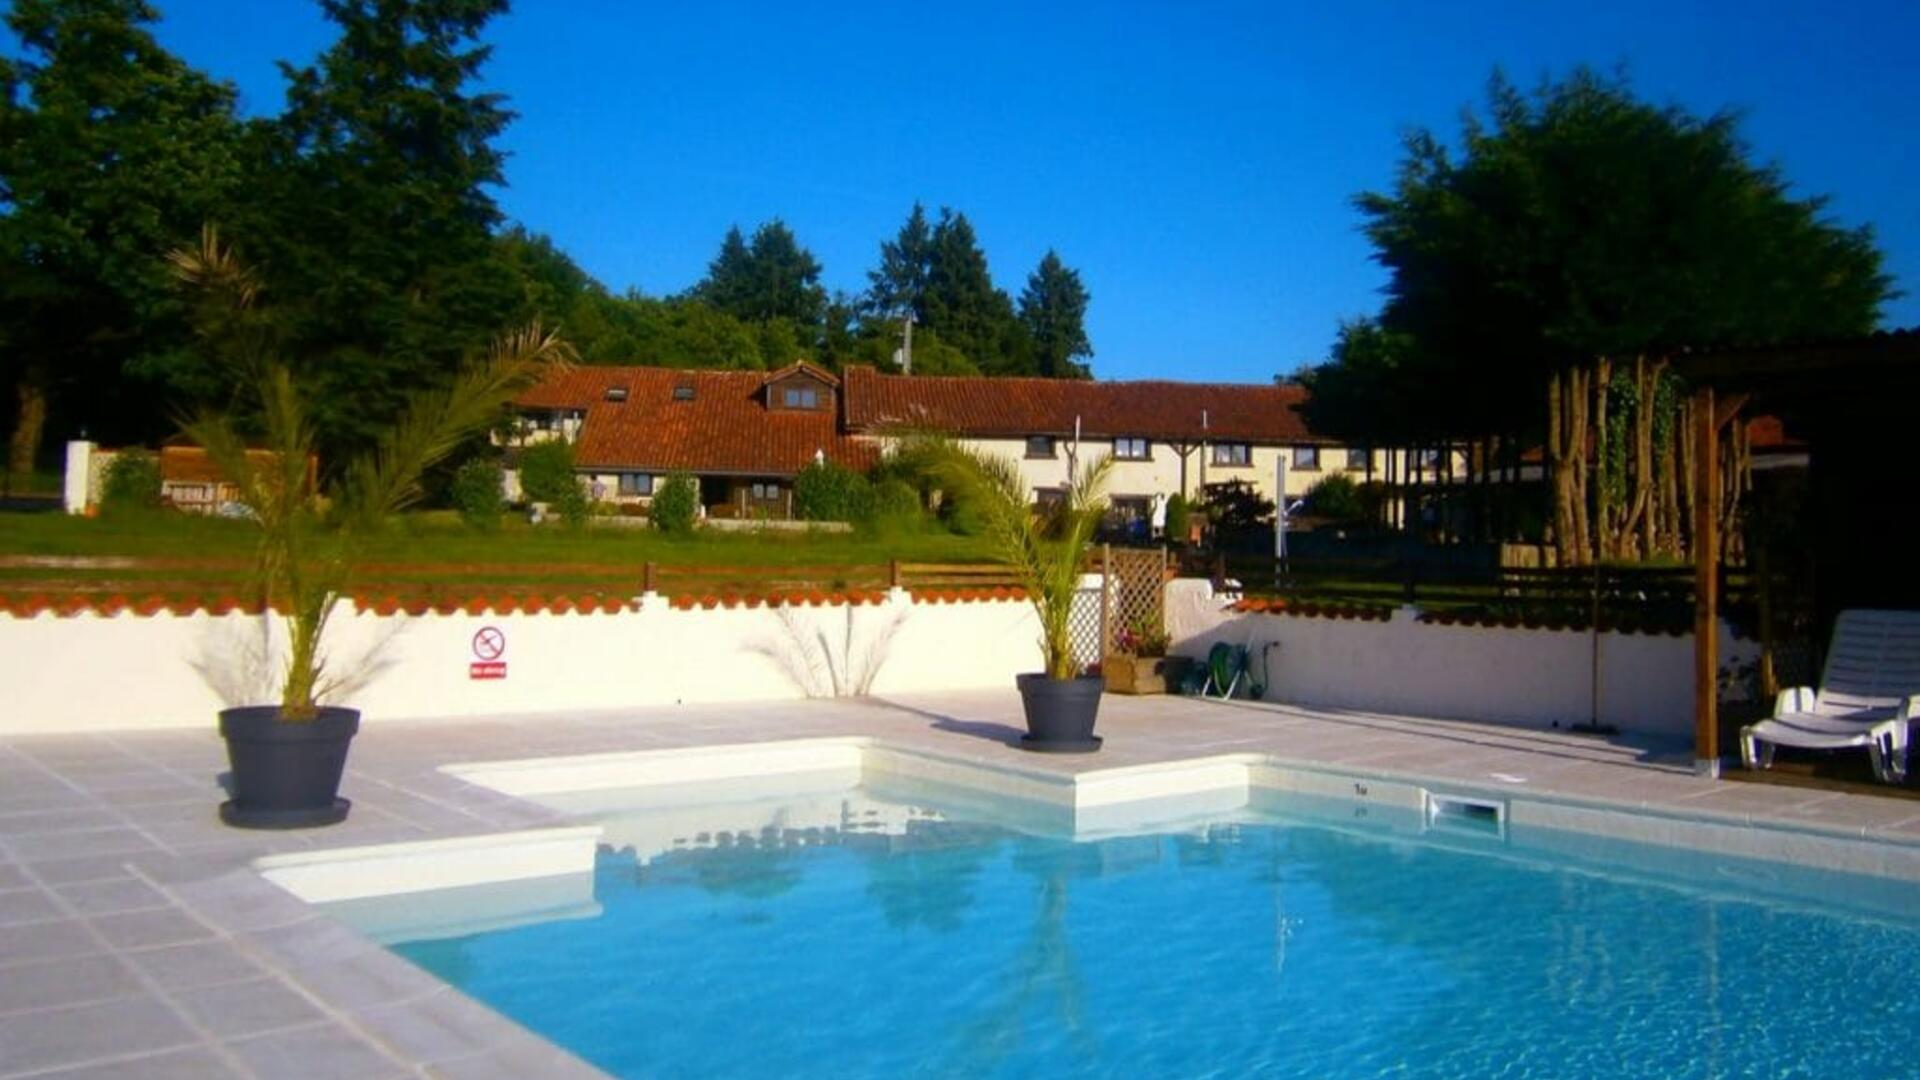 4 Bedroom Cottage/shared facilities in Poitou-Charentes, France